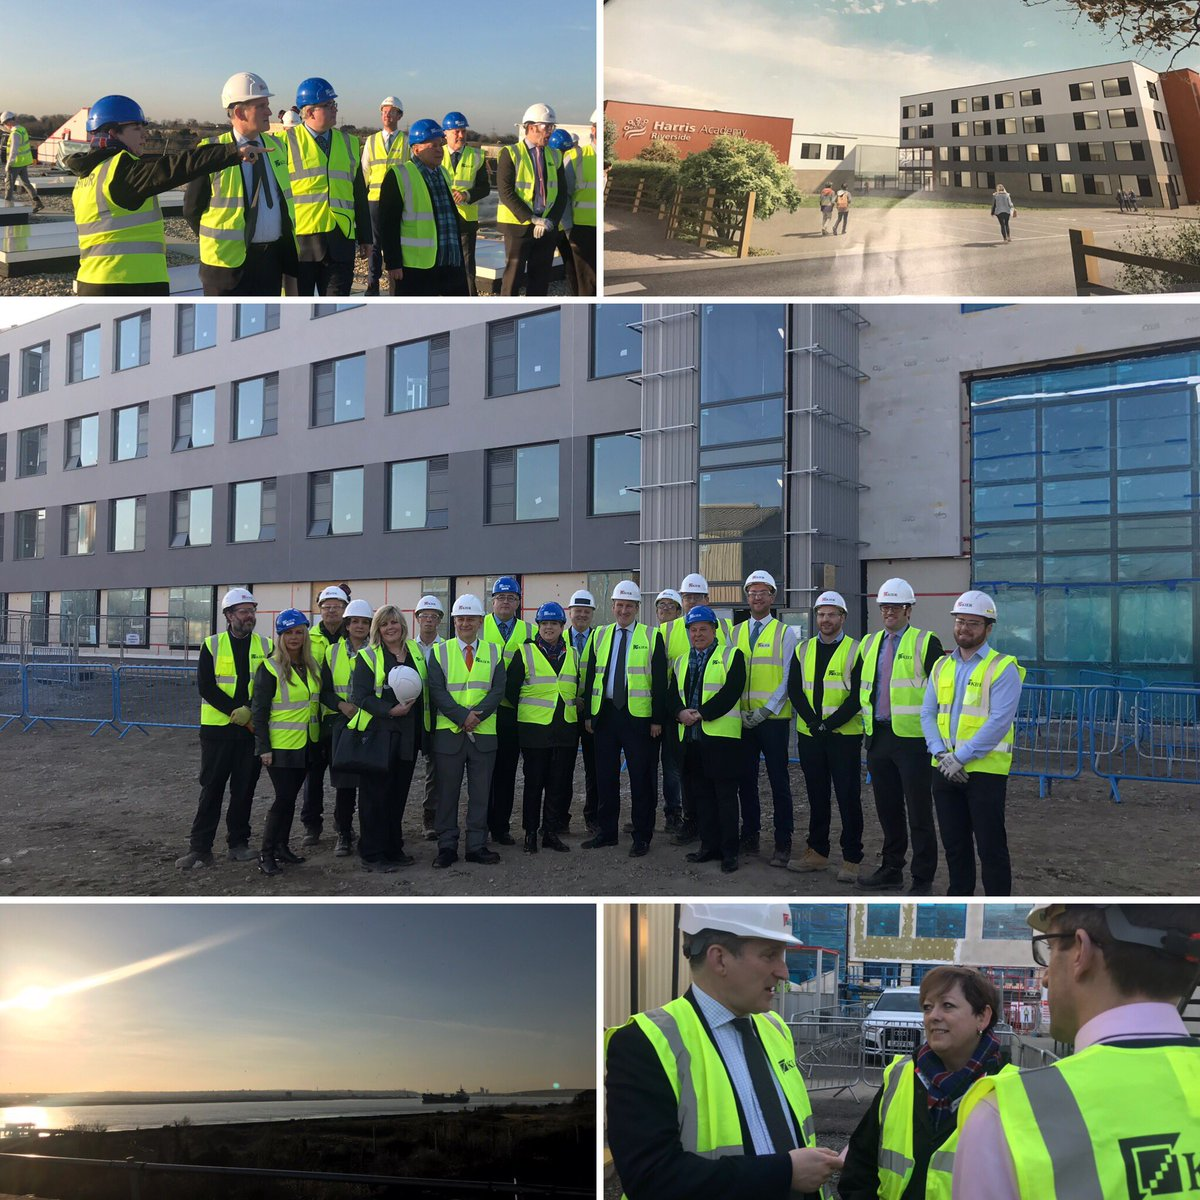 A beautiful afternoon in Purfleet today with the brilliant @JackieDP at the impressive new school building going up to house @theHARIacademy. We will deliver a million more school places this decade - the largest increase in 2 generations